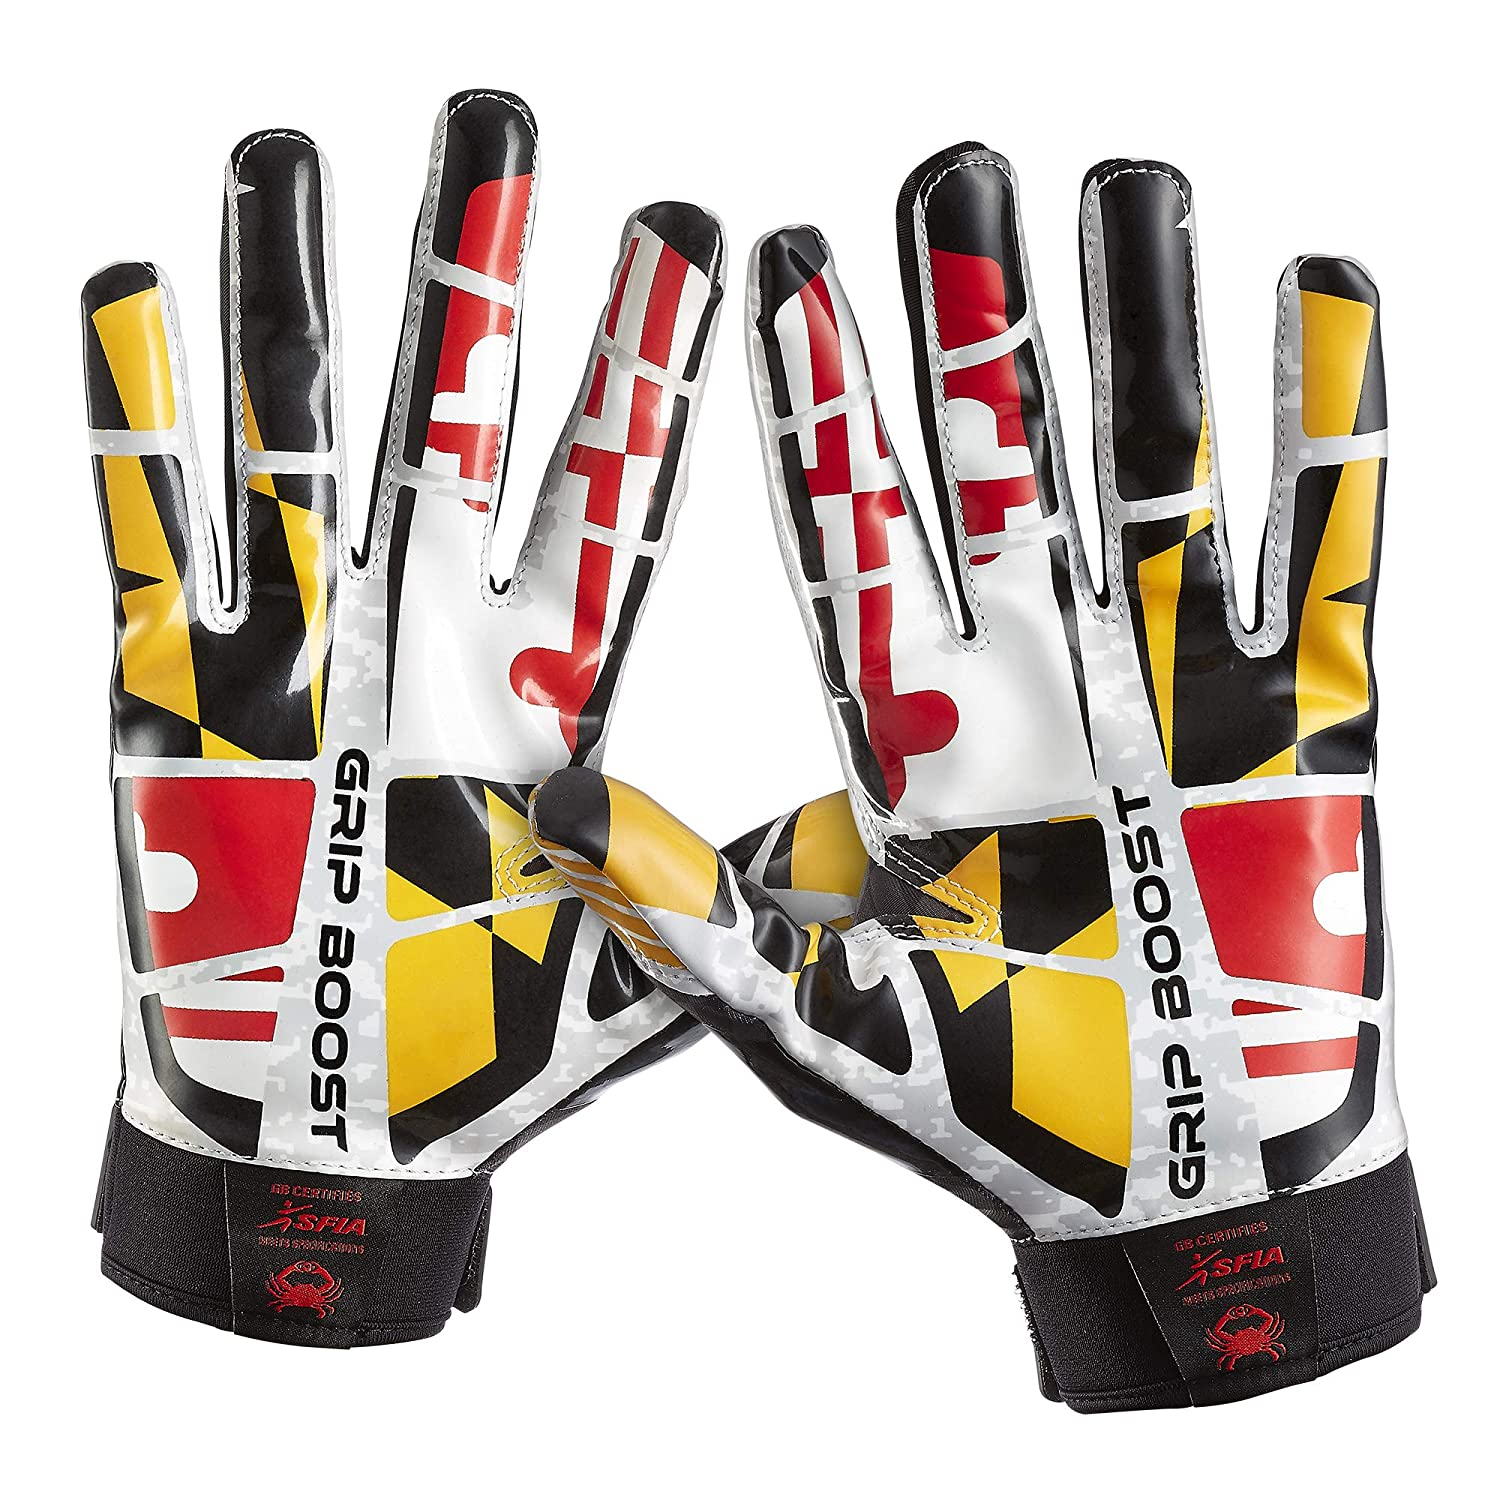 Grip Boost Maryland Flag Football Gloves Stealth Sticky Football Gloves Pro Elite Football Gloves Youth and Adult Sizes